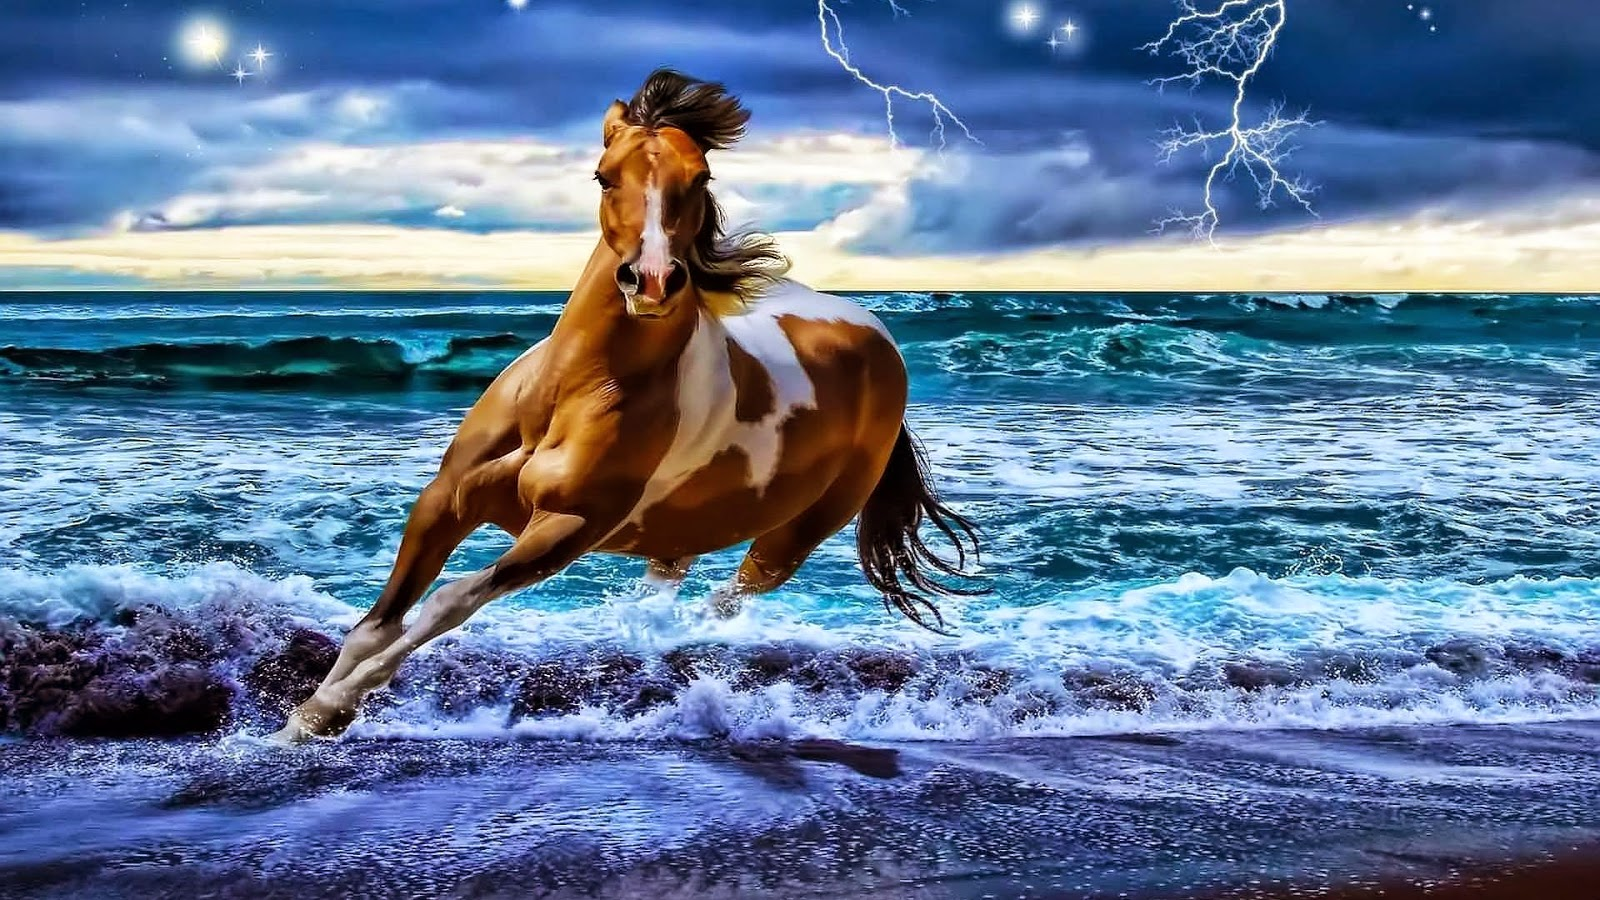 island mountain horse wallpaper - photo #24